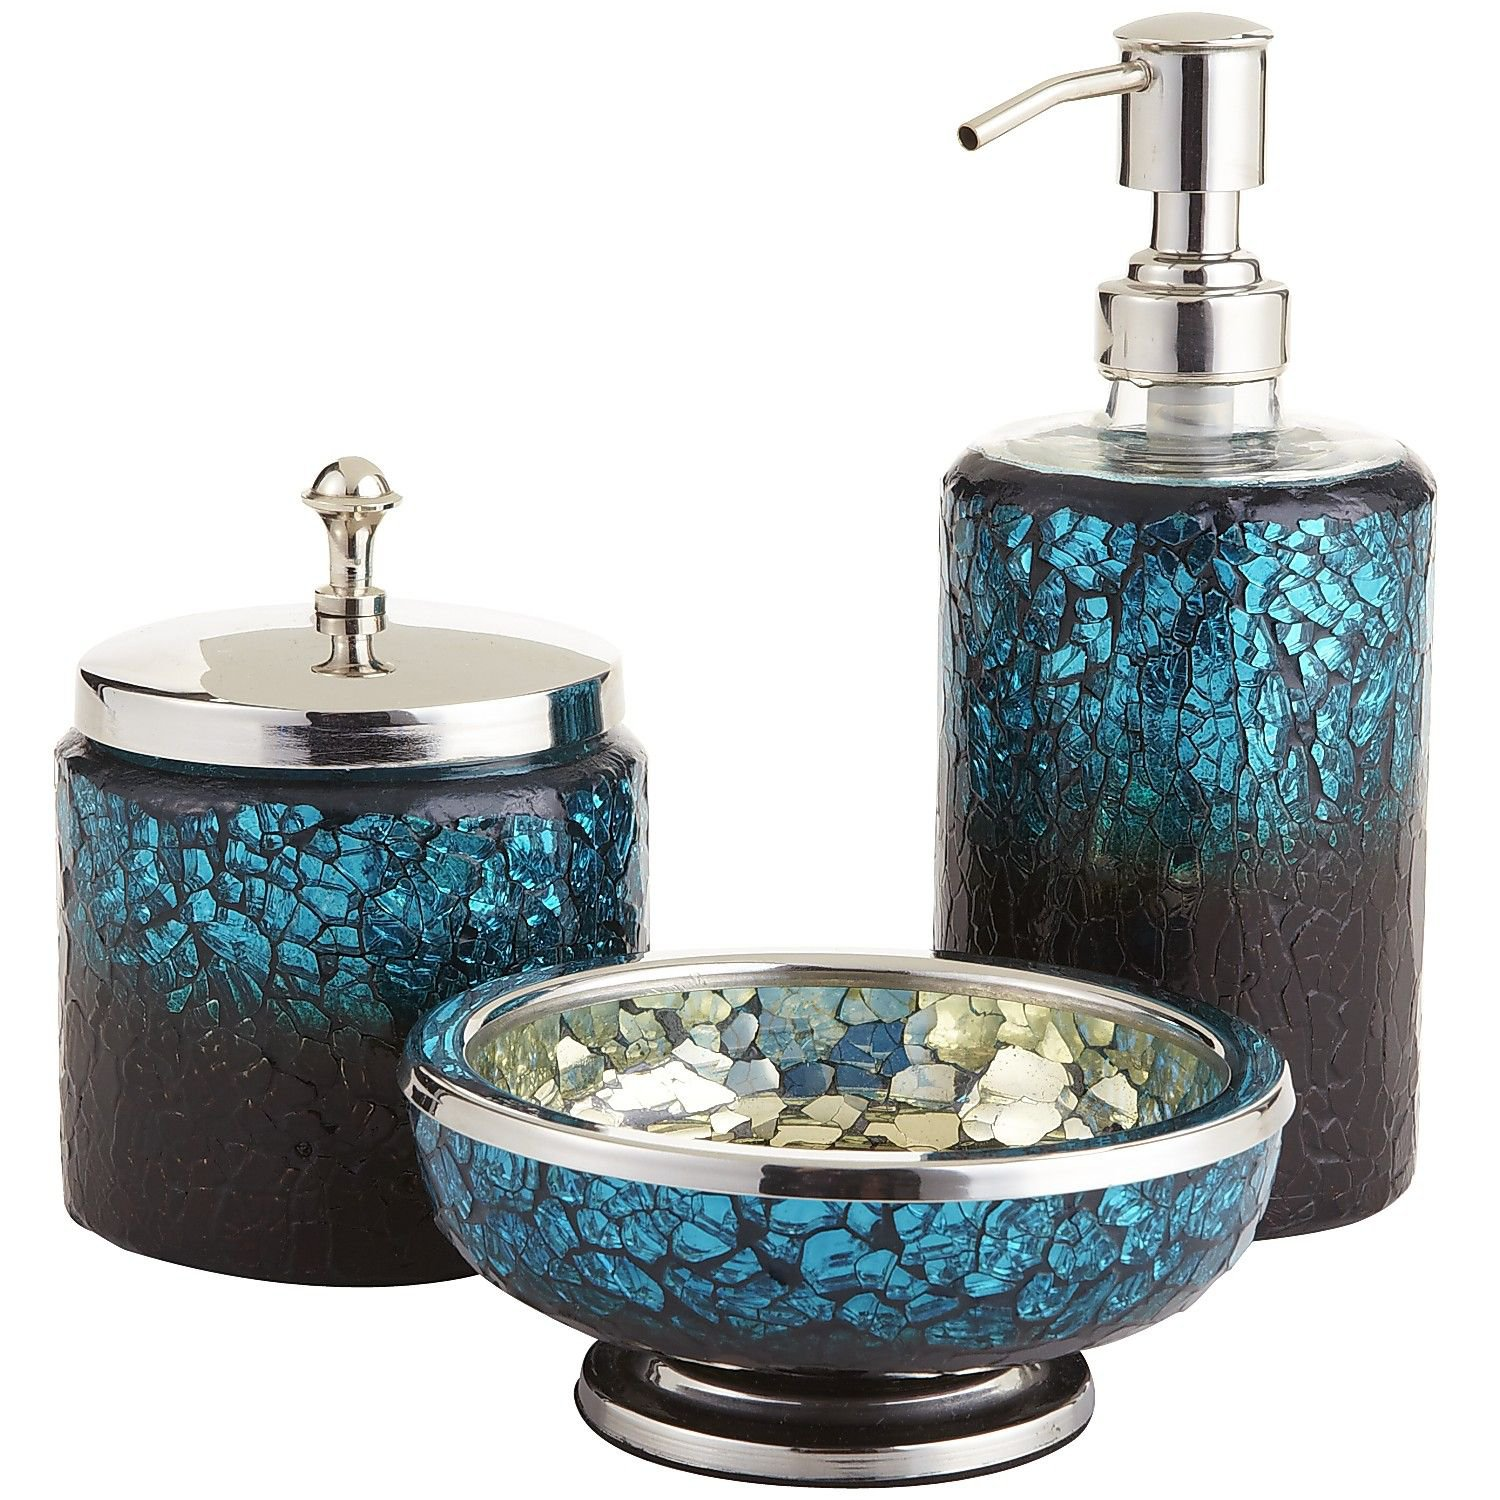 Peacock mosaic bath accessories from pier 1 imports for the for Mosaic bath accessories